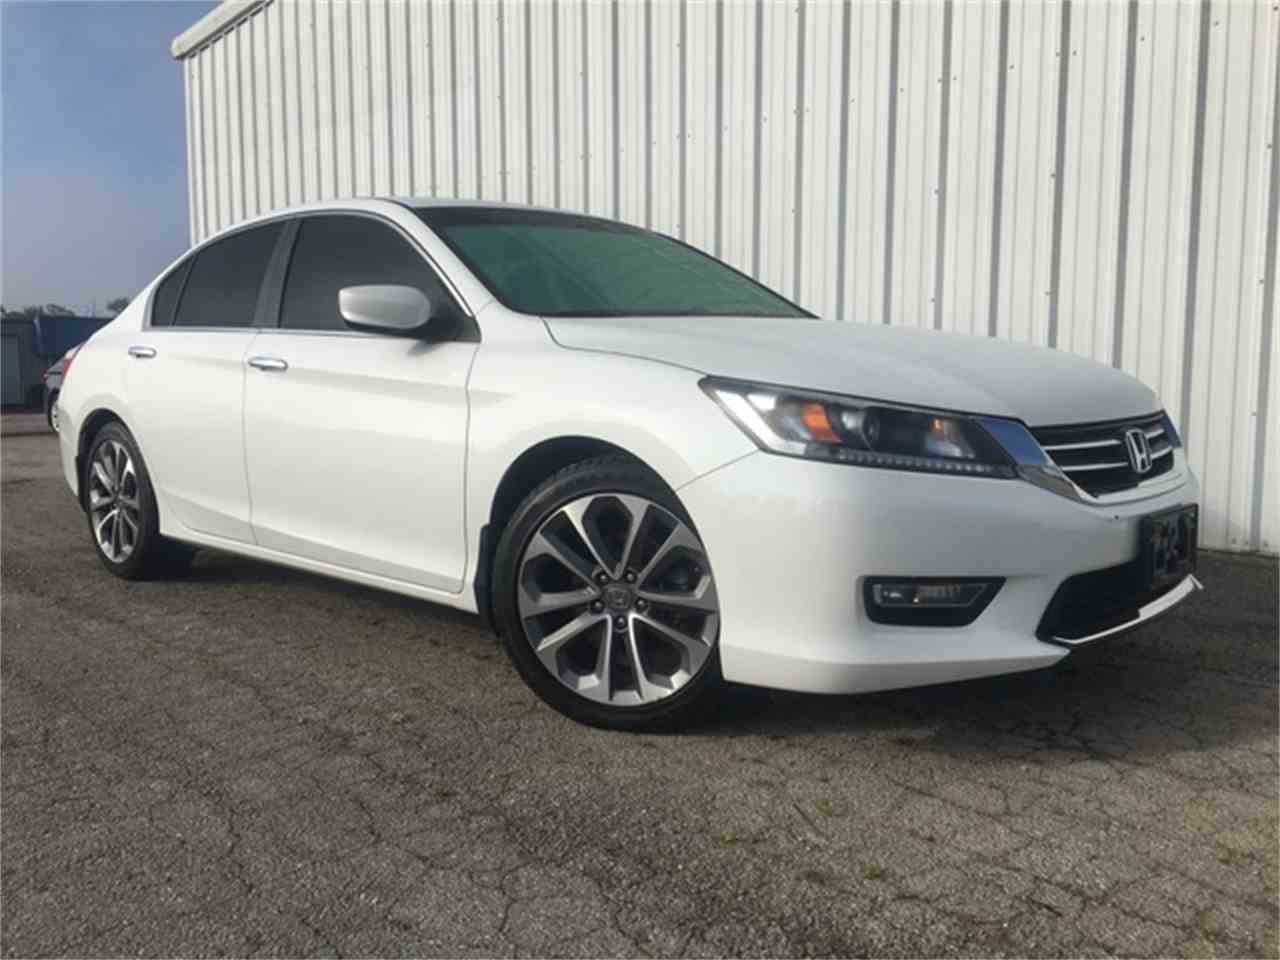 Large Picture of '13 Accord - M3VE